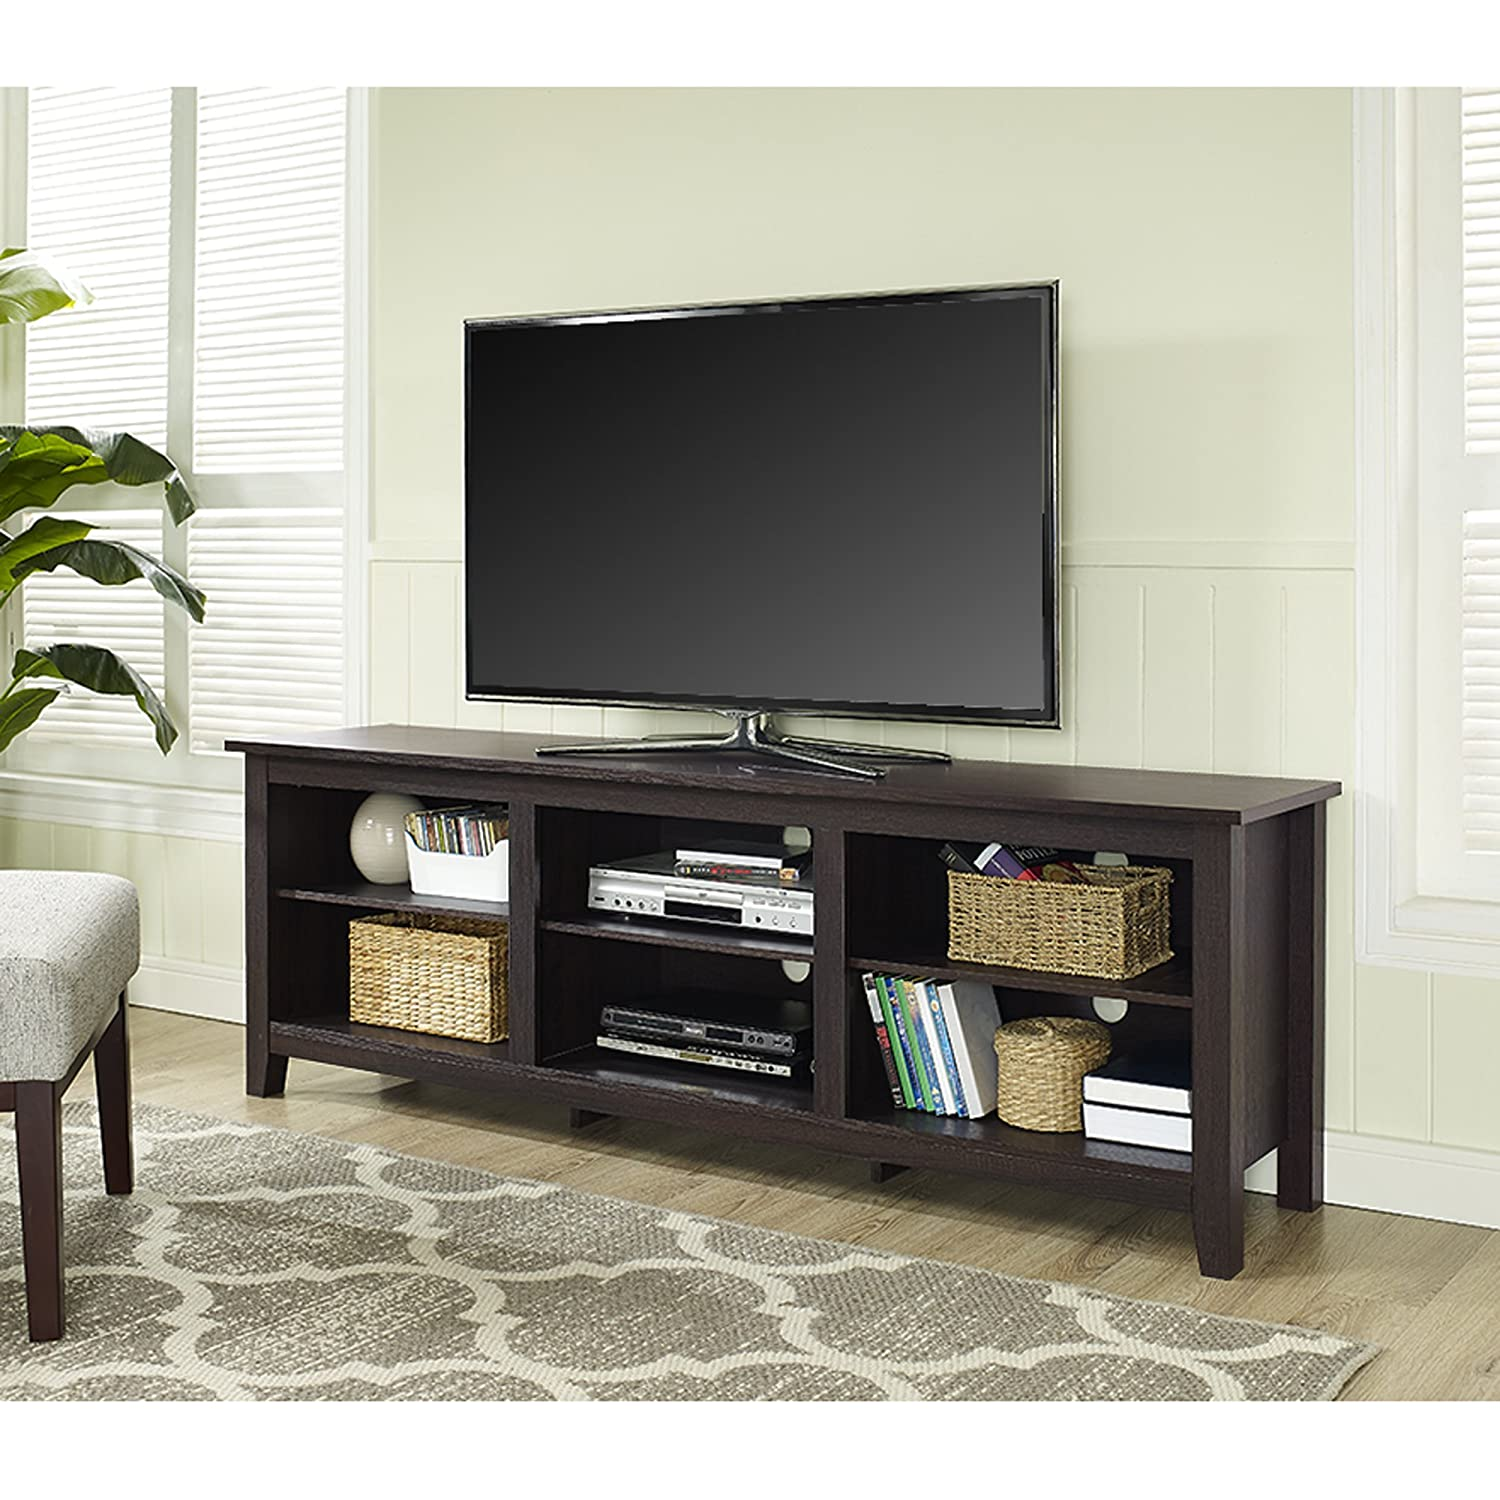 "Amazon WE Furniture 70"" Espresso Wood TV Stand Console"